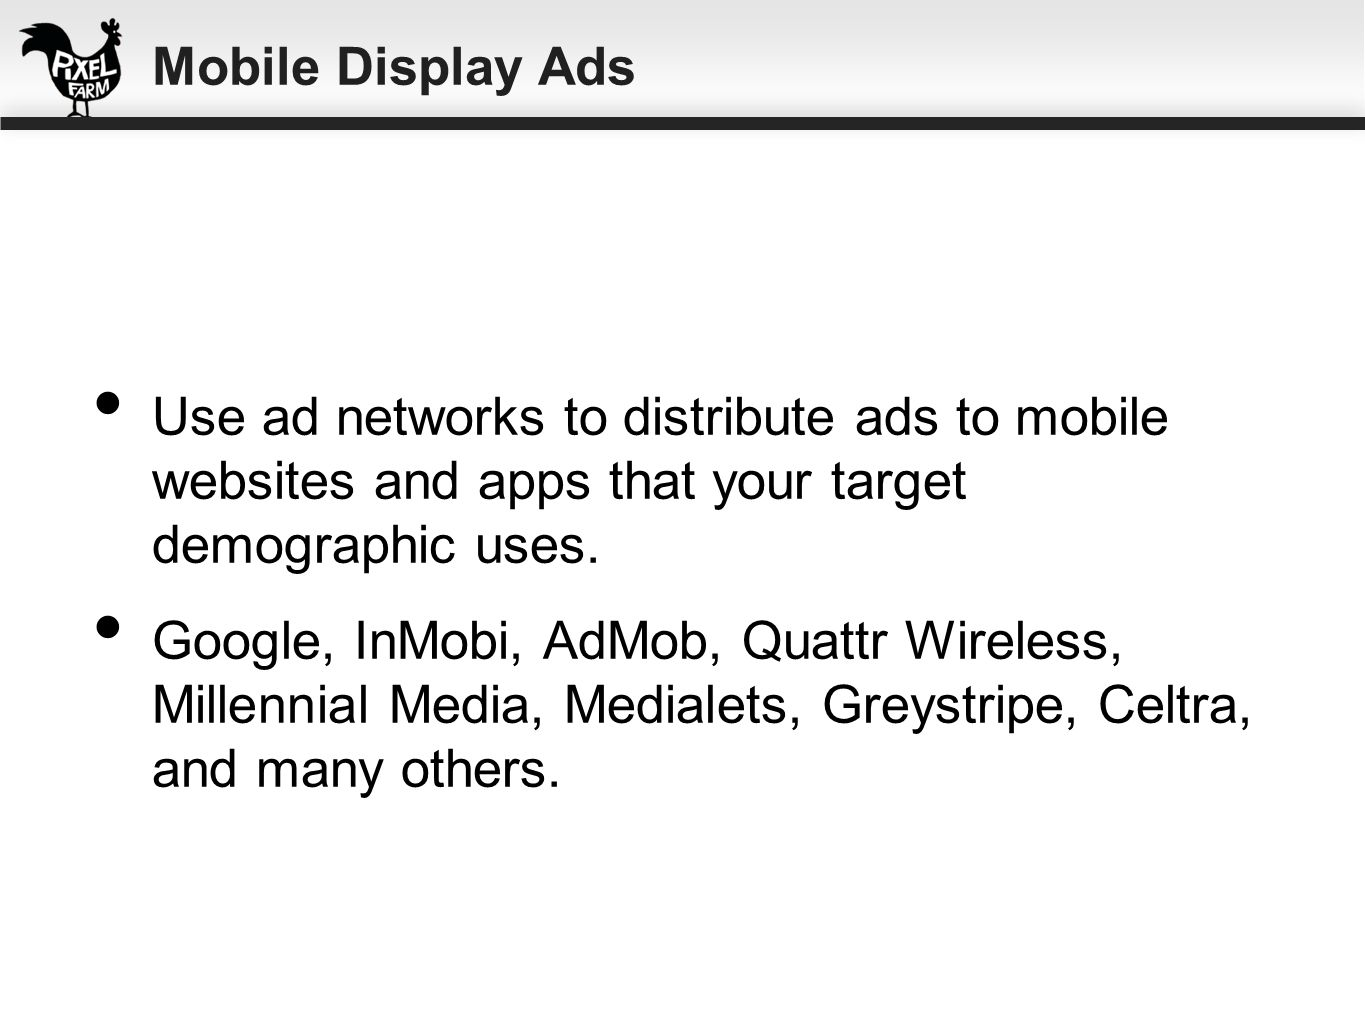 Mobile Display Ads Use ad networks to distribute ads to mobile websites and apps that your target demographic uses.